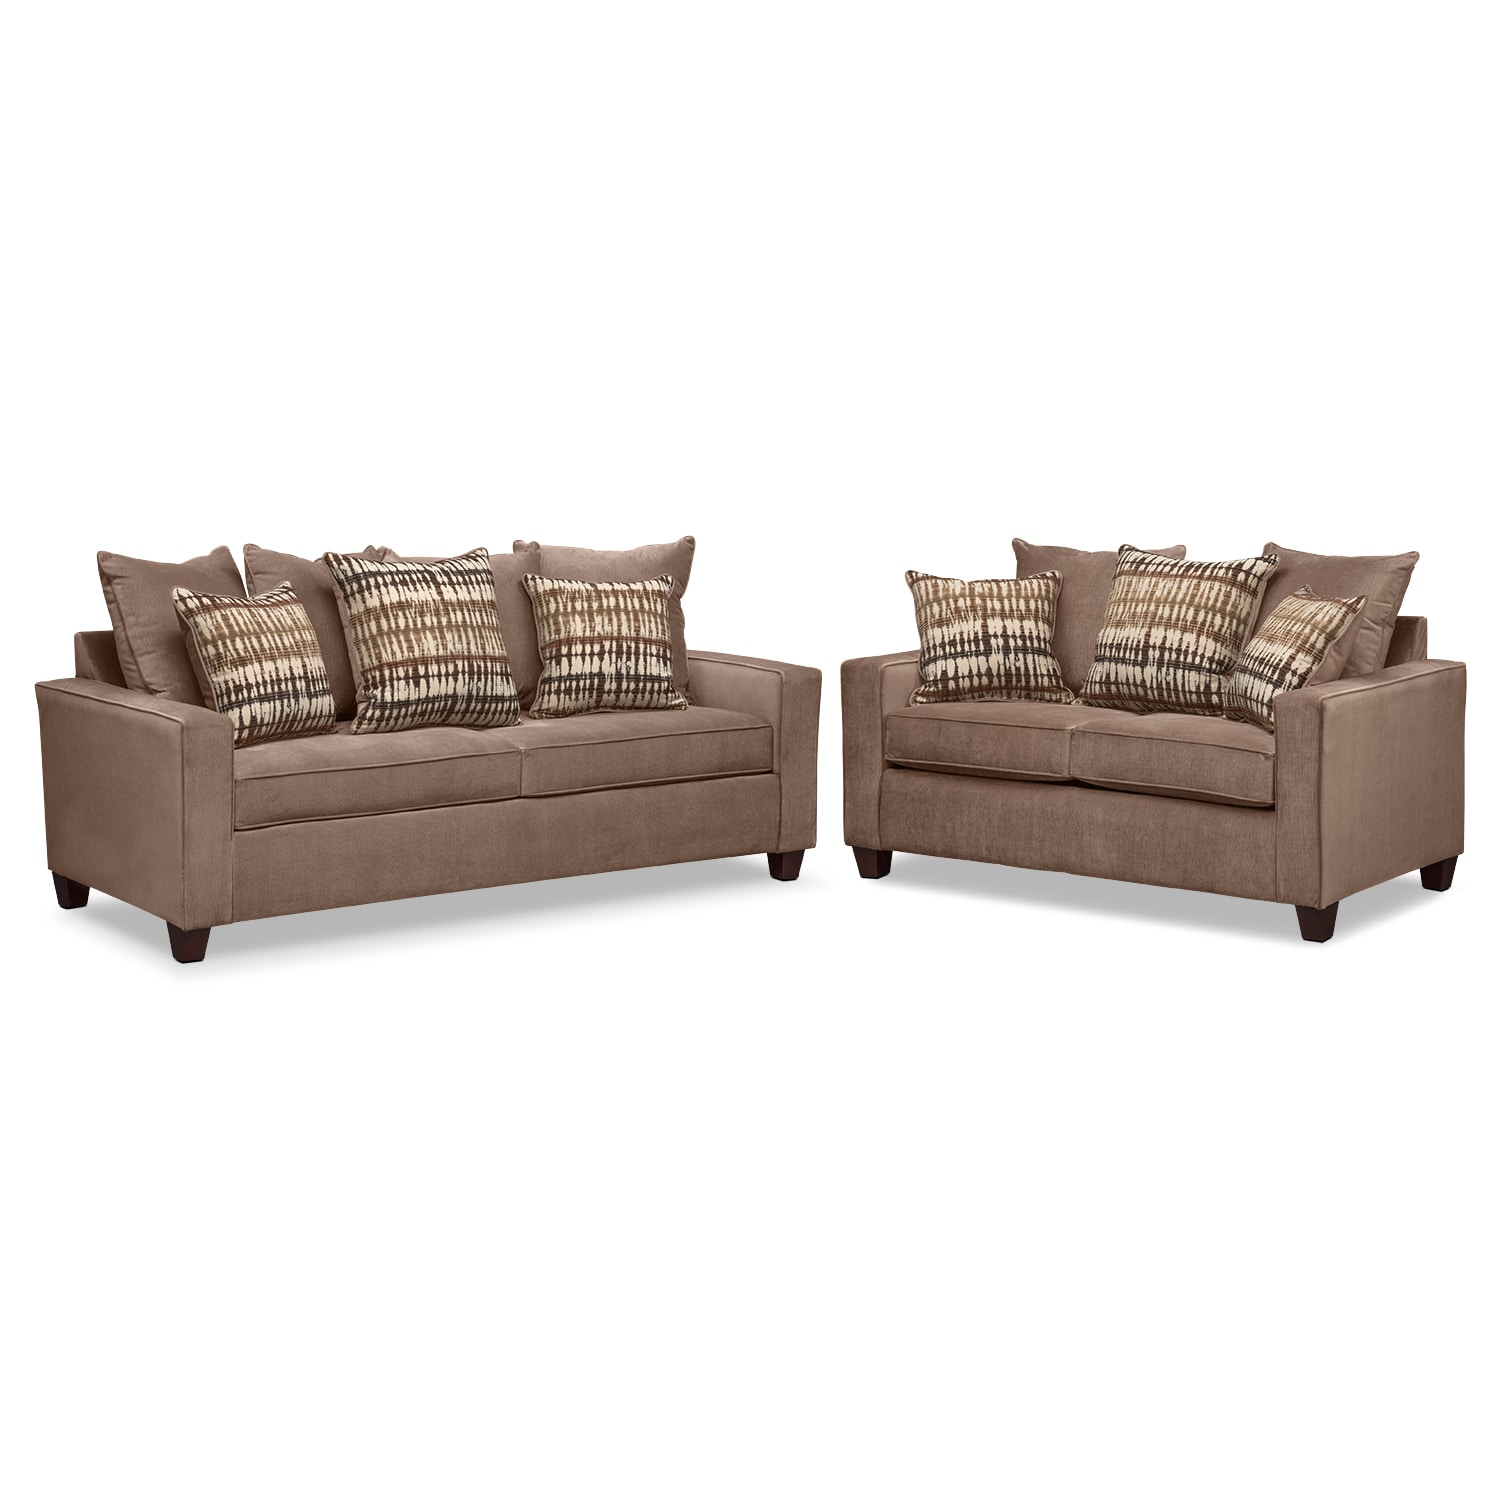 Living Room Furniture - Bryden Queen Memory Foam Sleeper Sofa and Loveseat Set - Chocolate